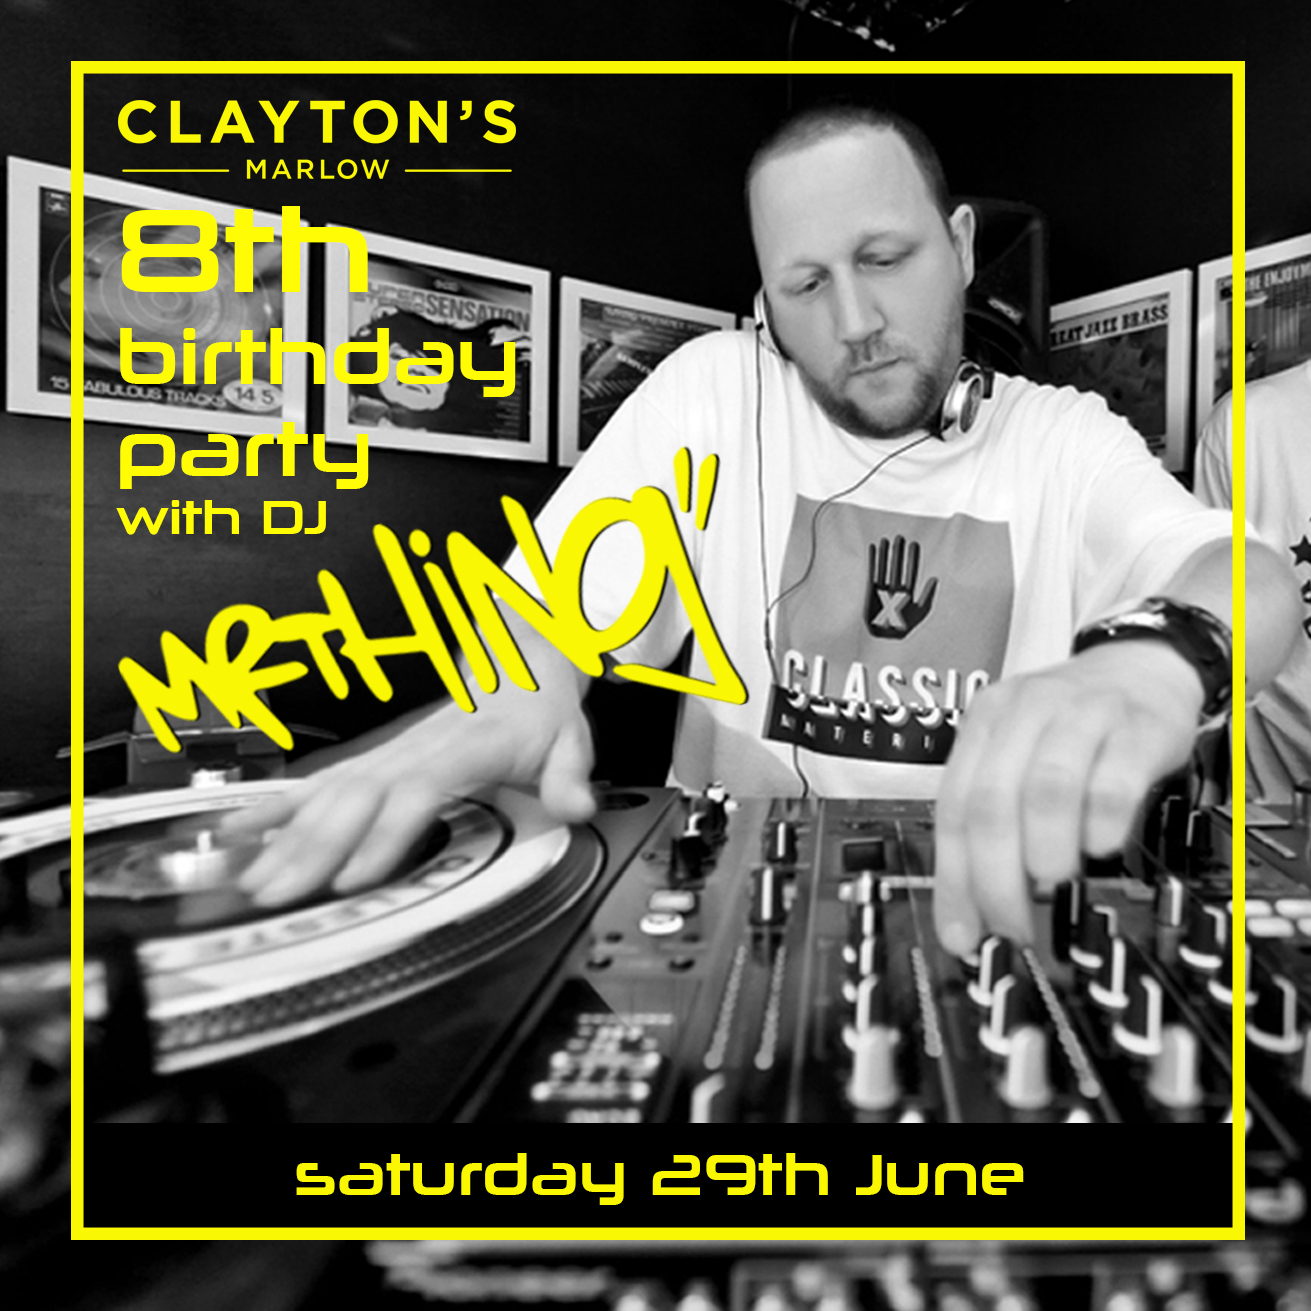 Clayton's Marlow Presents DJ Mr Thing